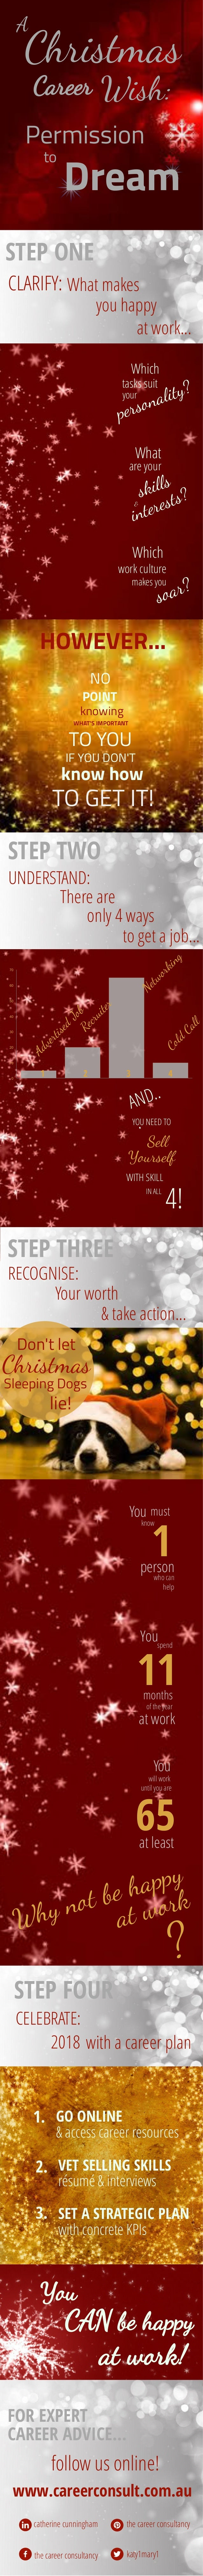 Permission Christmas A What makes  at work... to Dream  you happy CLARIFY: What  are your skills & interests? Career Wish:...